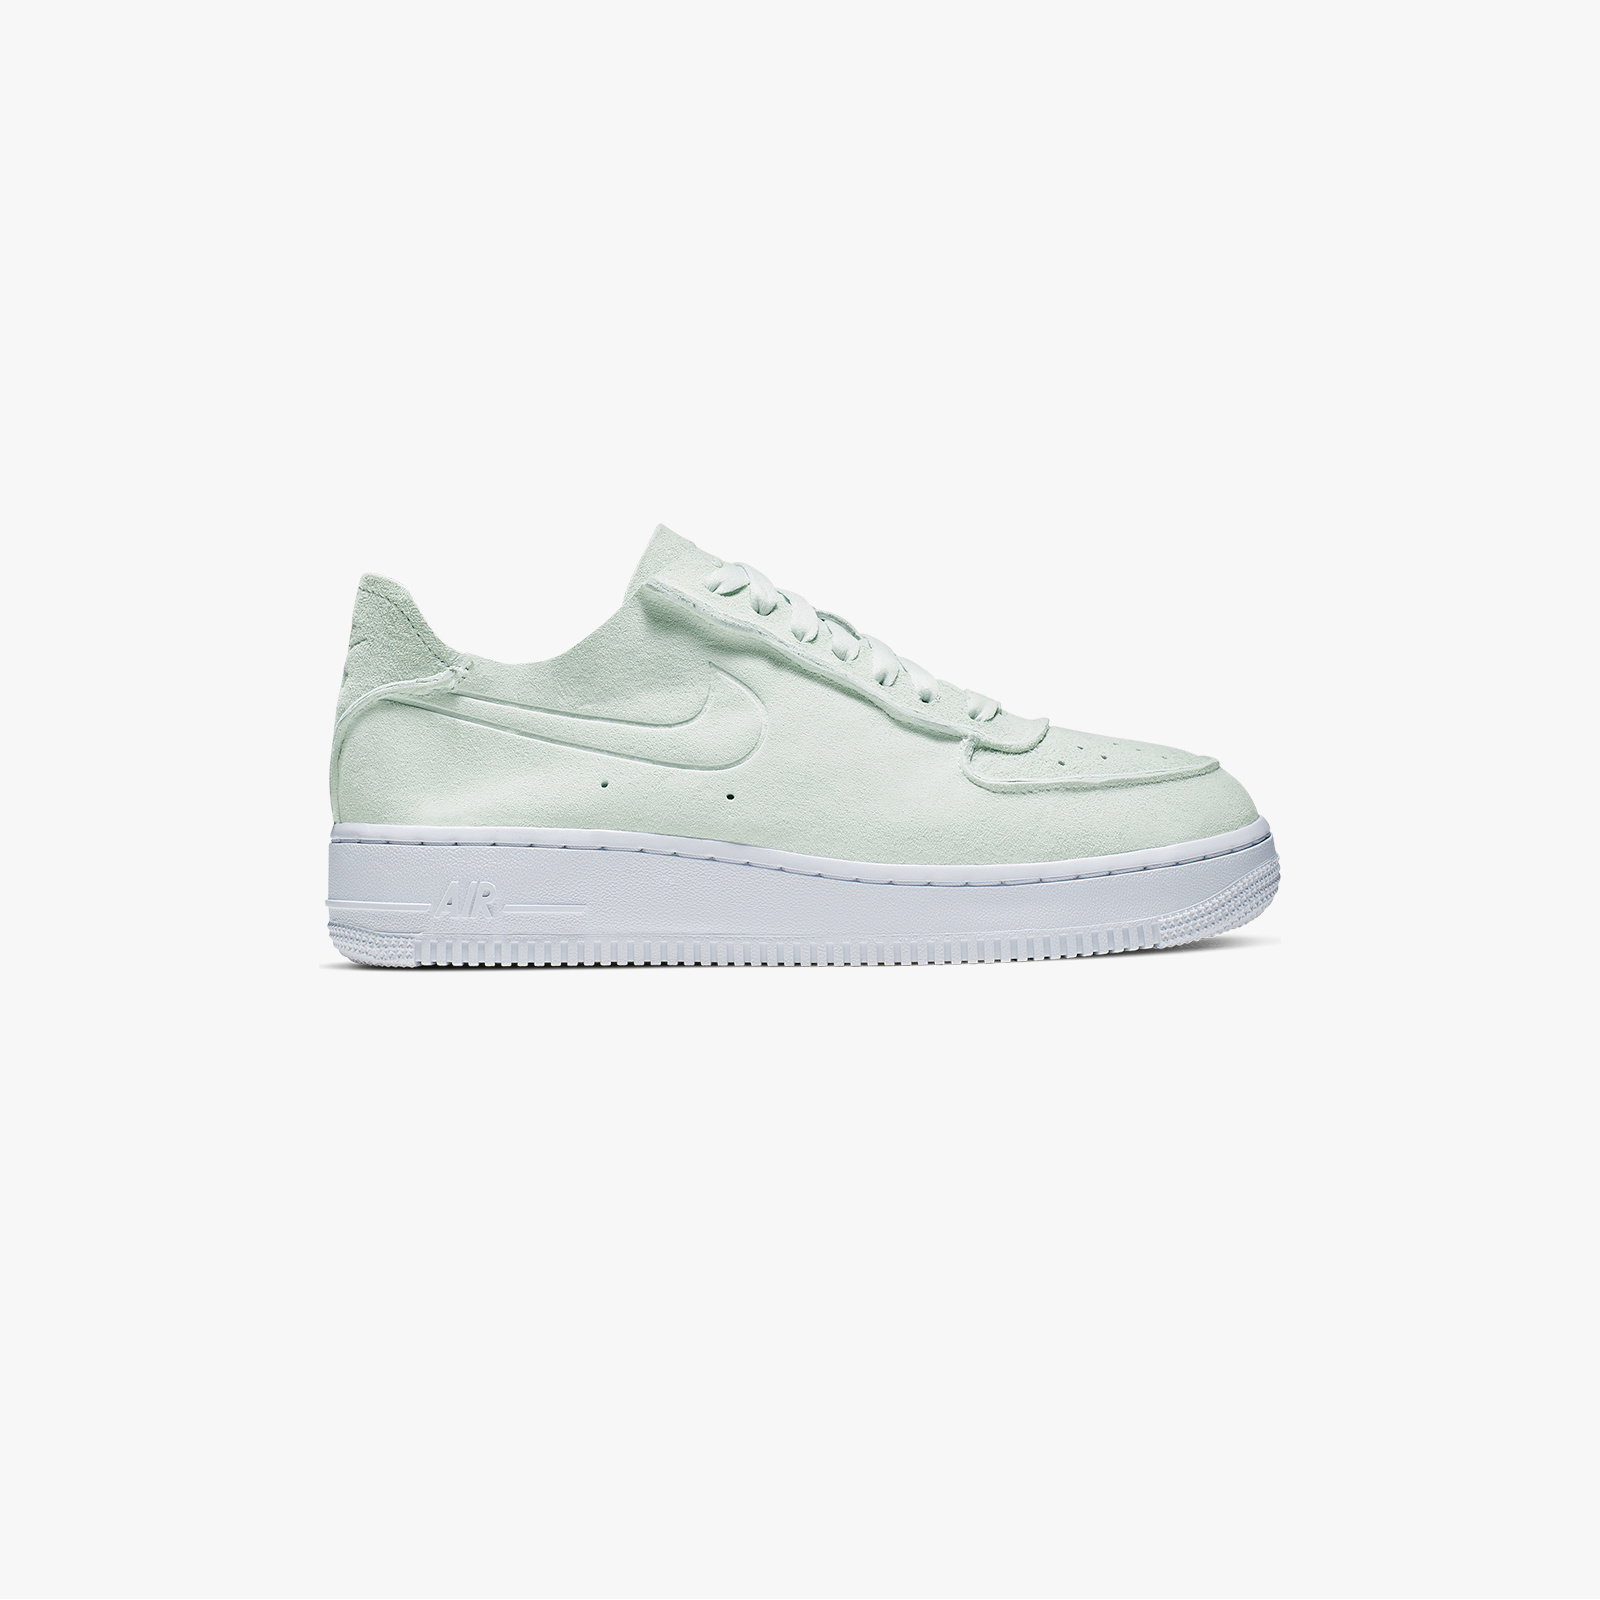 Nike Air Force 1 07 Deconstructed At4046 400